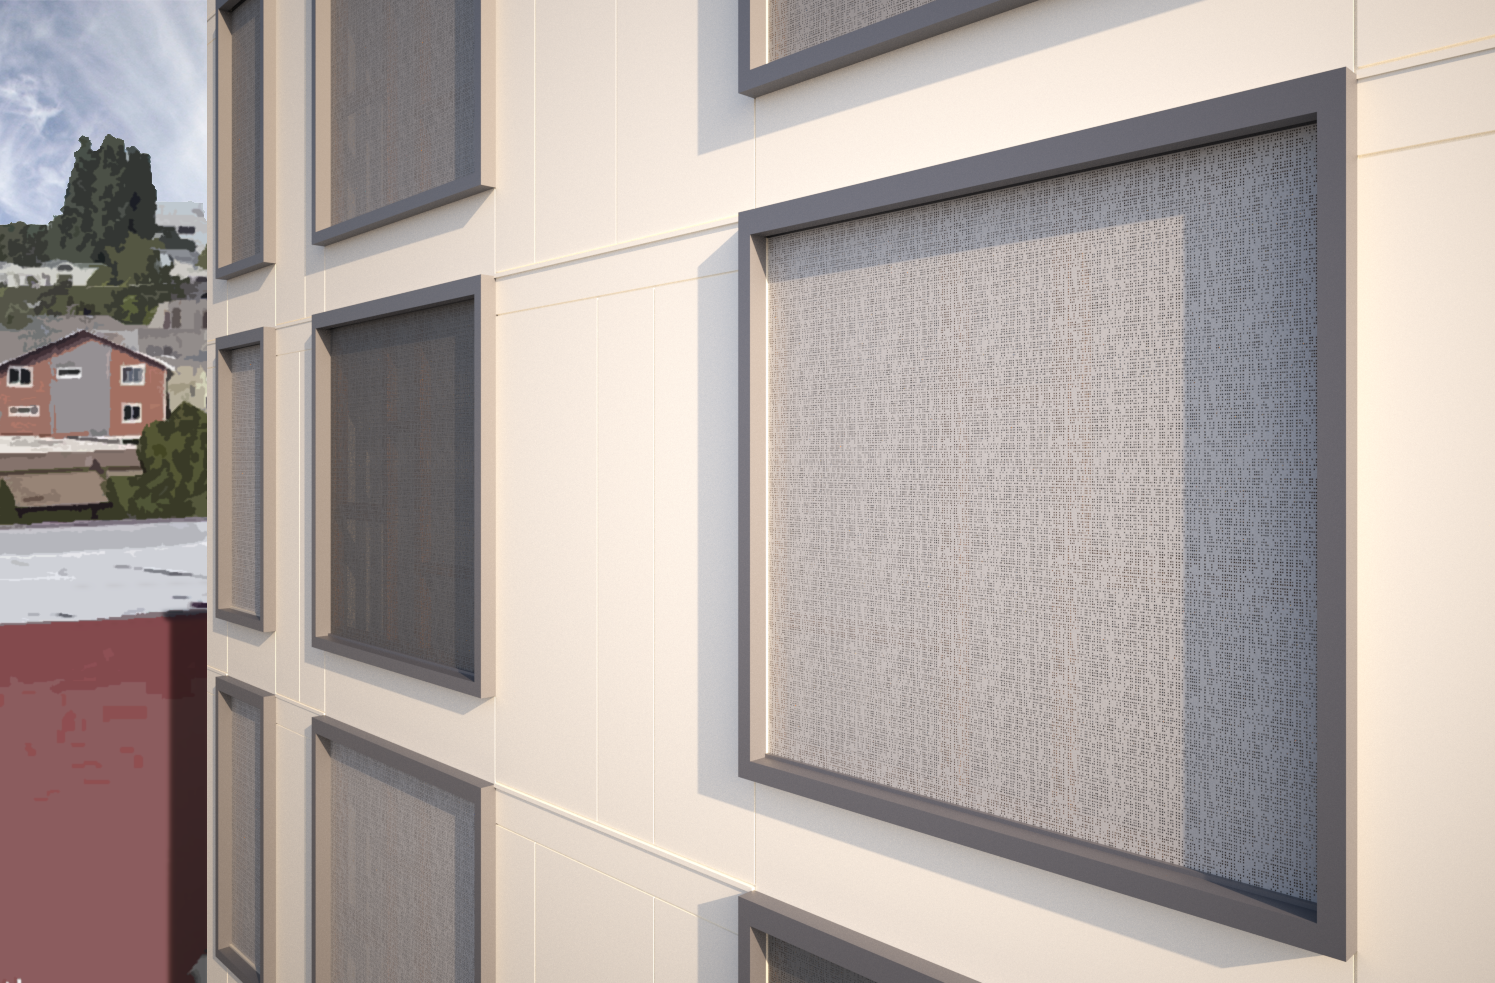 WINDOW DETAIL_SHADES DOWN_Cropped.png